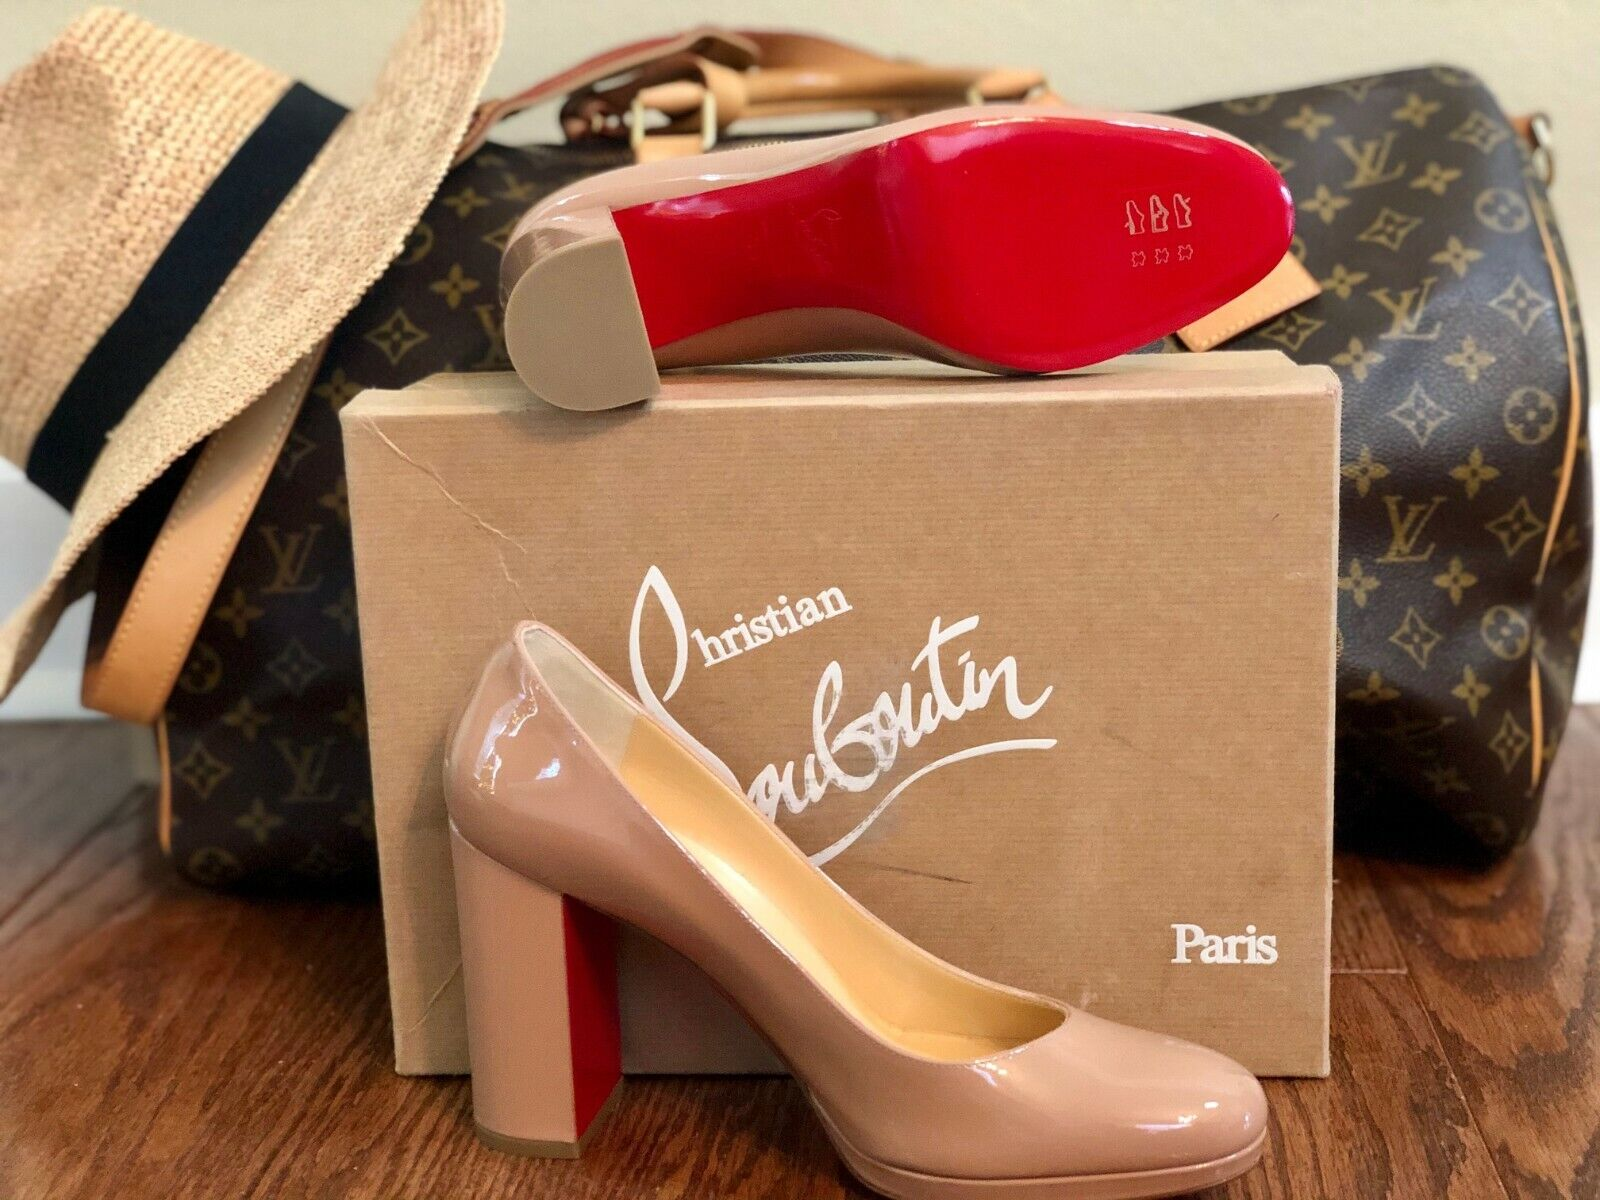 Christian Louboutin KABETTS 100 Patent Leather Block Heel Pumps Shoes Nude